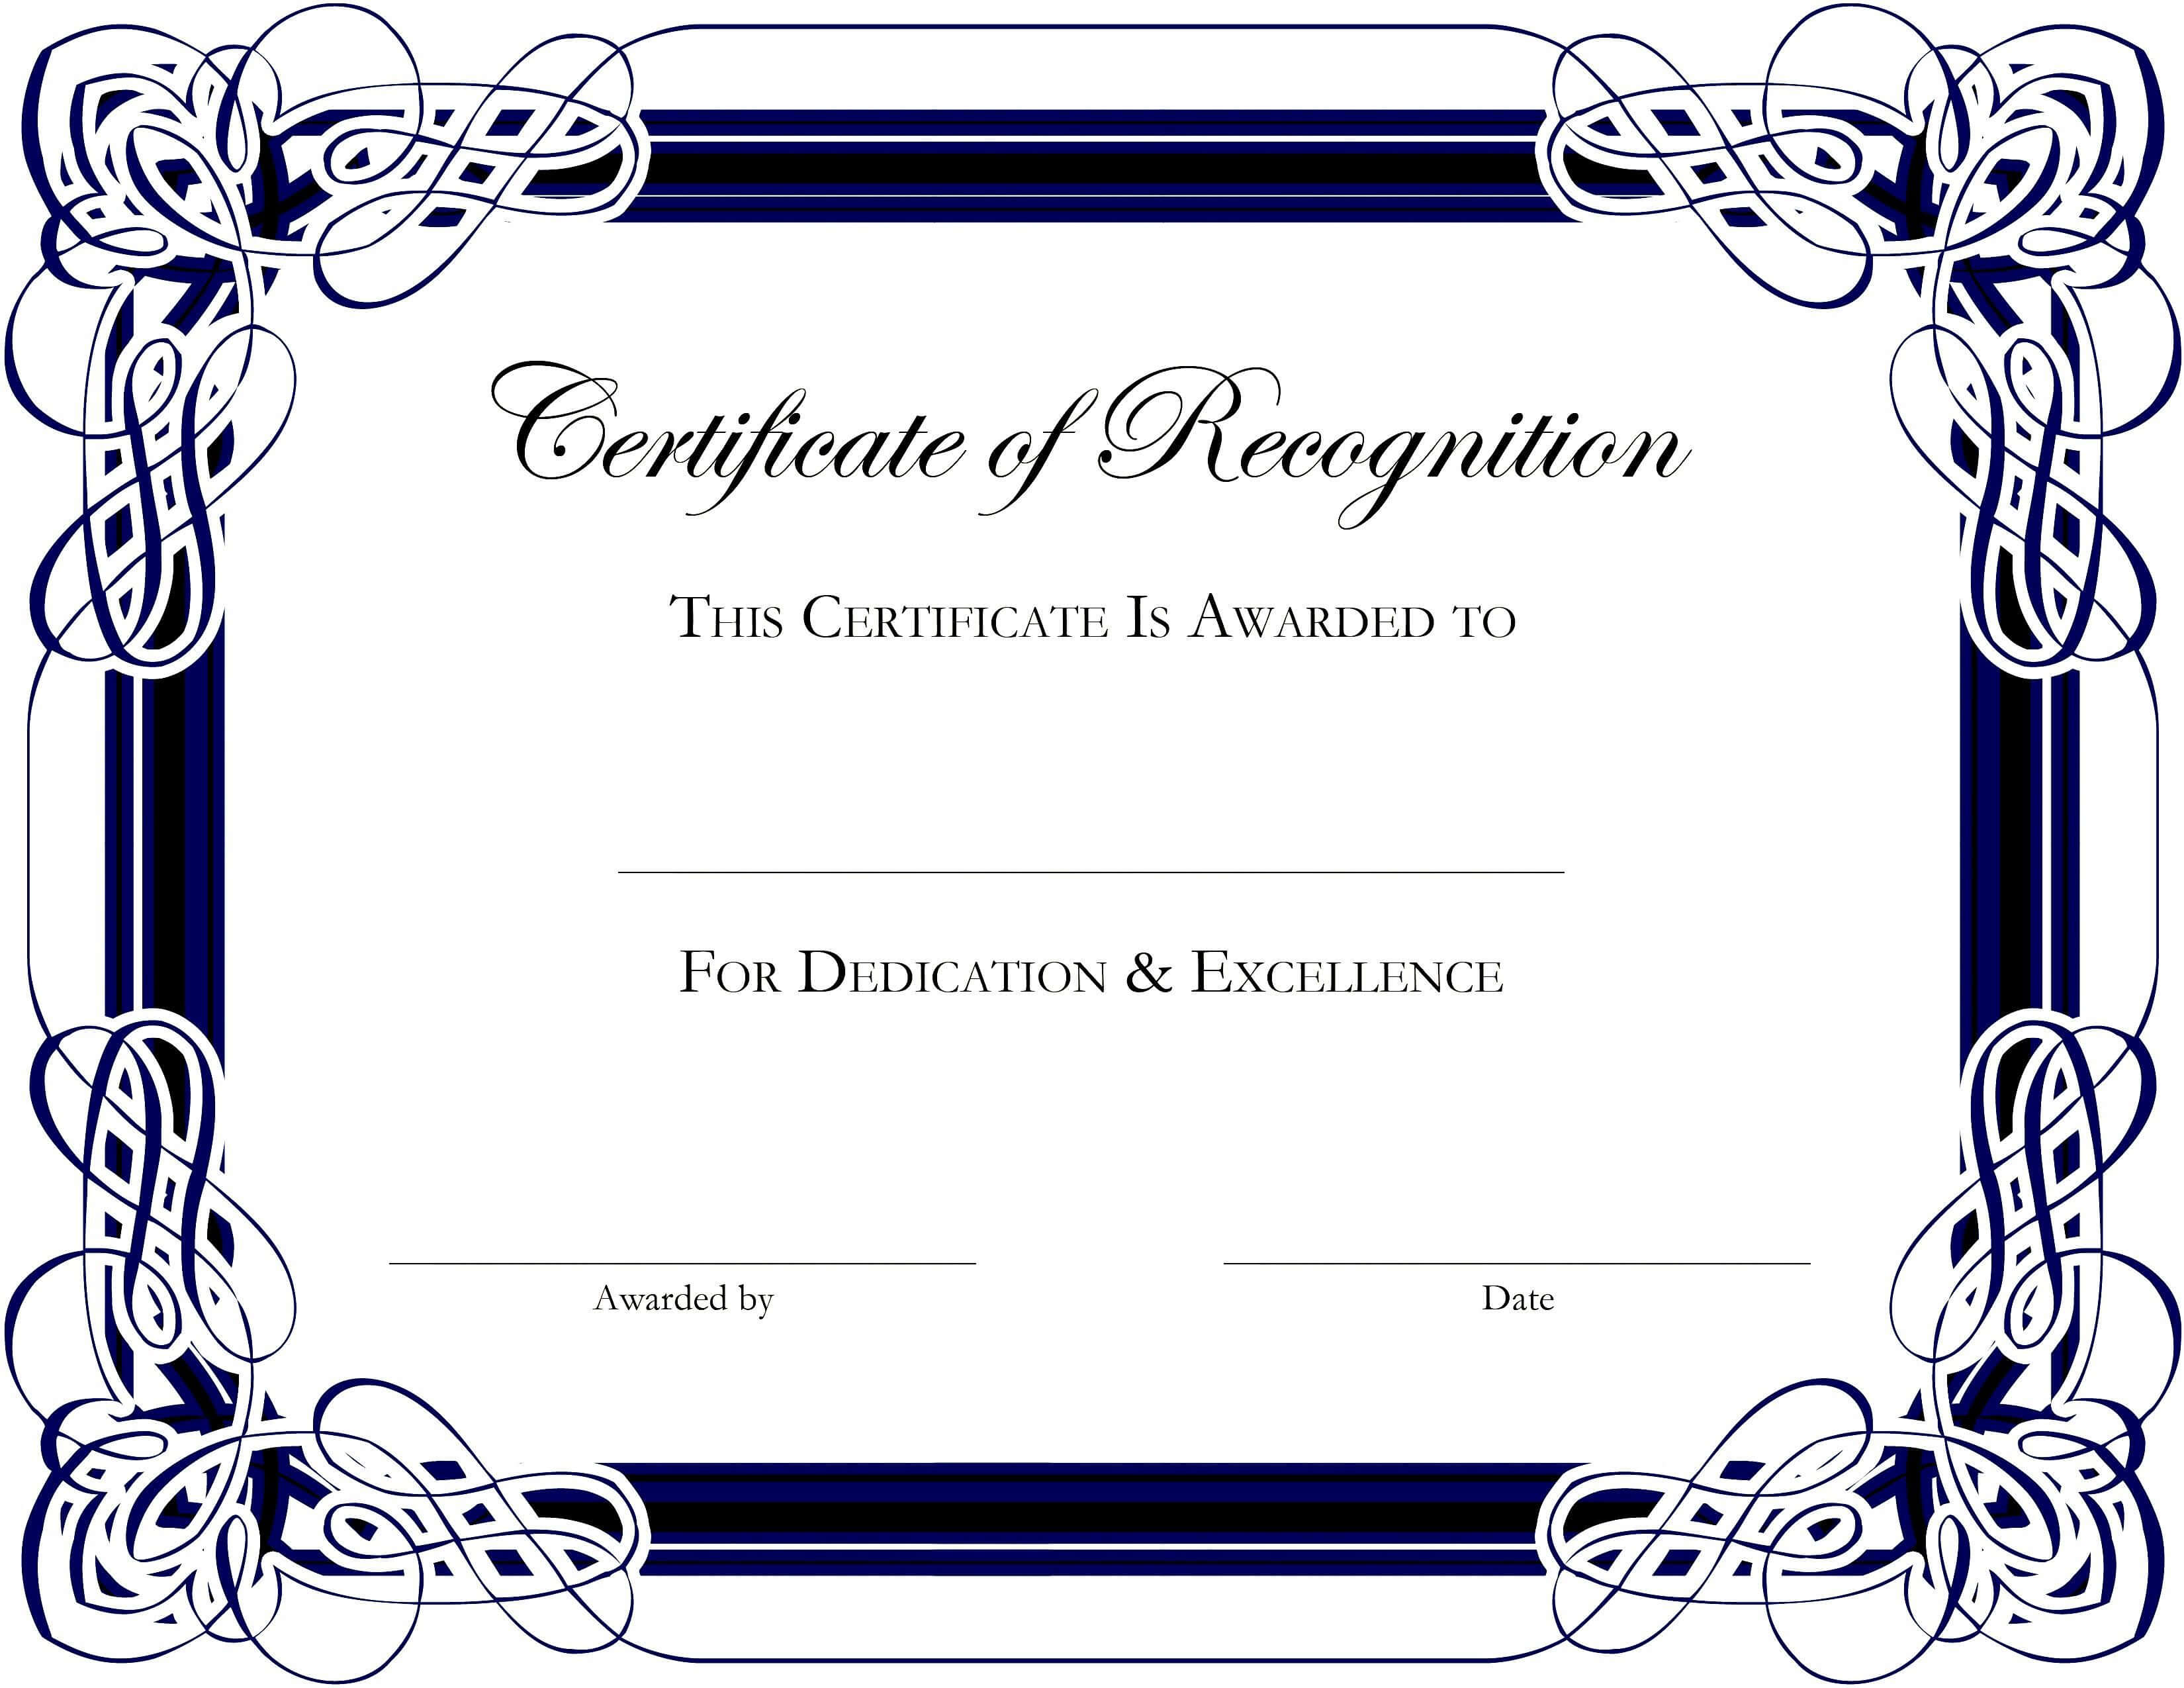 Award Templates For Microsoft Publisher   Besttemplate123 Throughout Hayes Certificate Templates